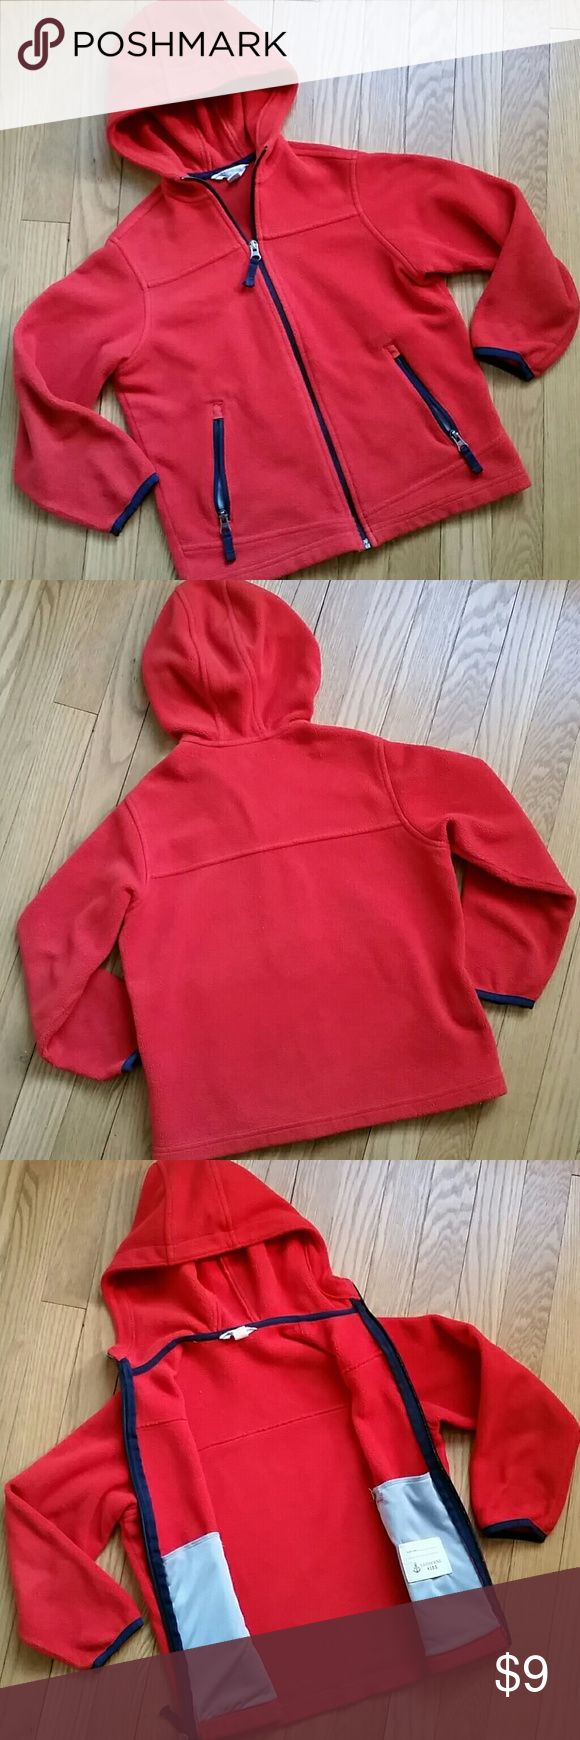 Size 7 Lands' End kid fleece jacket Size 7 kids' fleece jacket with hood, made by Lands' End. * Midweight fleece (not super thin or very heavy). * In good condition. No holes or marks; zippers all in good working order; just some overall signs of wash and wear. * Orange red color, with navy blue trim. Could be worn by boys or girls. * 16-1/2 inches, armpit to armpit, when zippered closed. 18-1/2 in, from top of shoulder to bottom of jacket (see last pic).   ** Price is firm unless bundled…